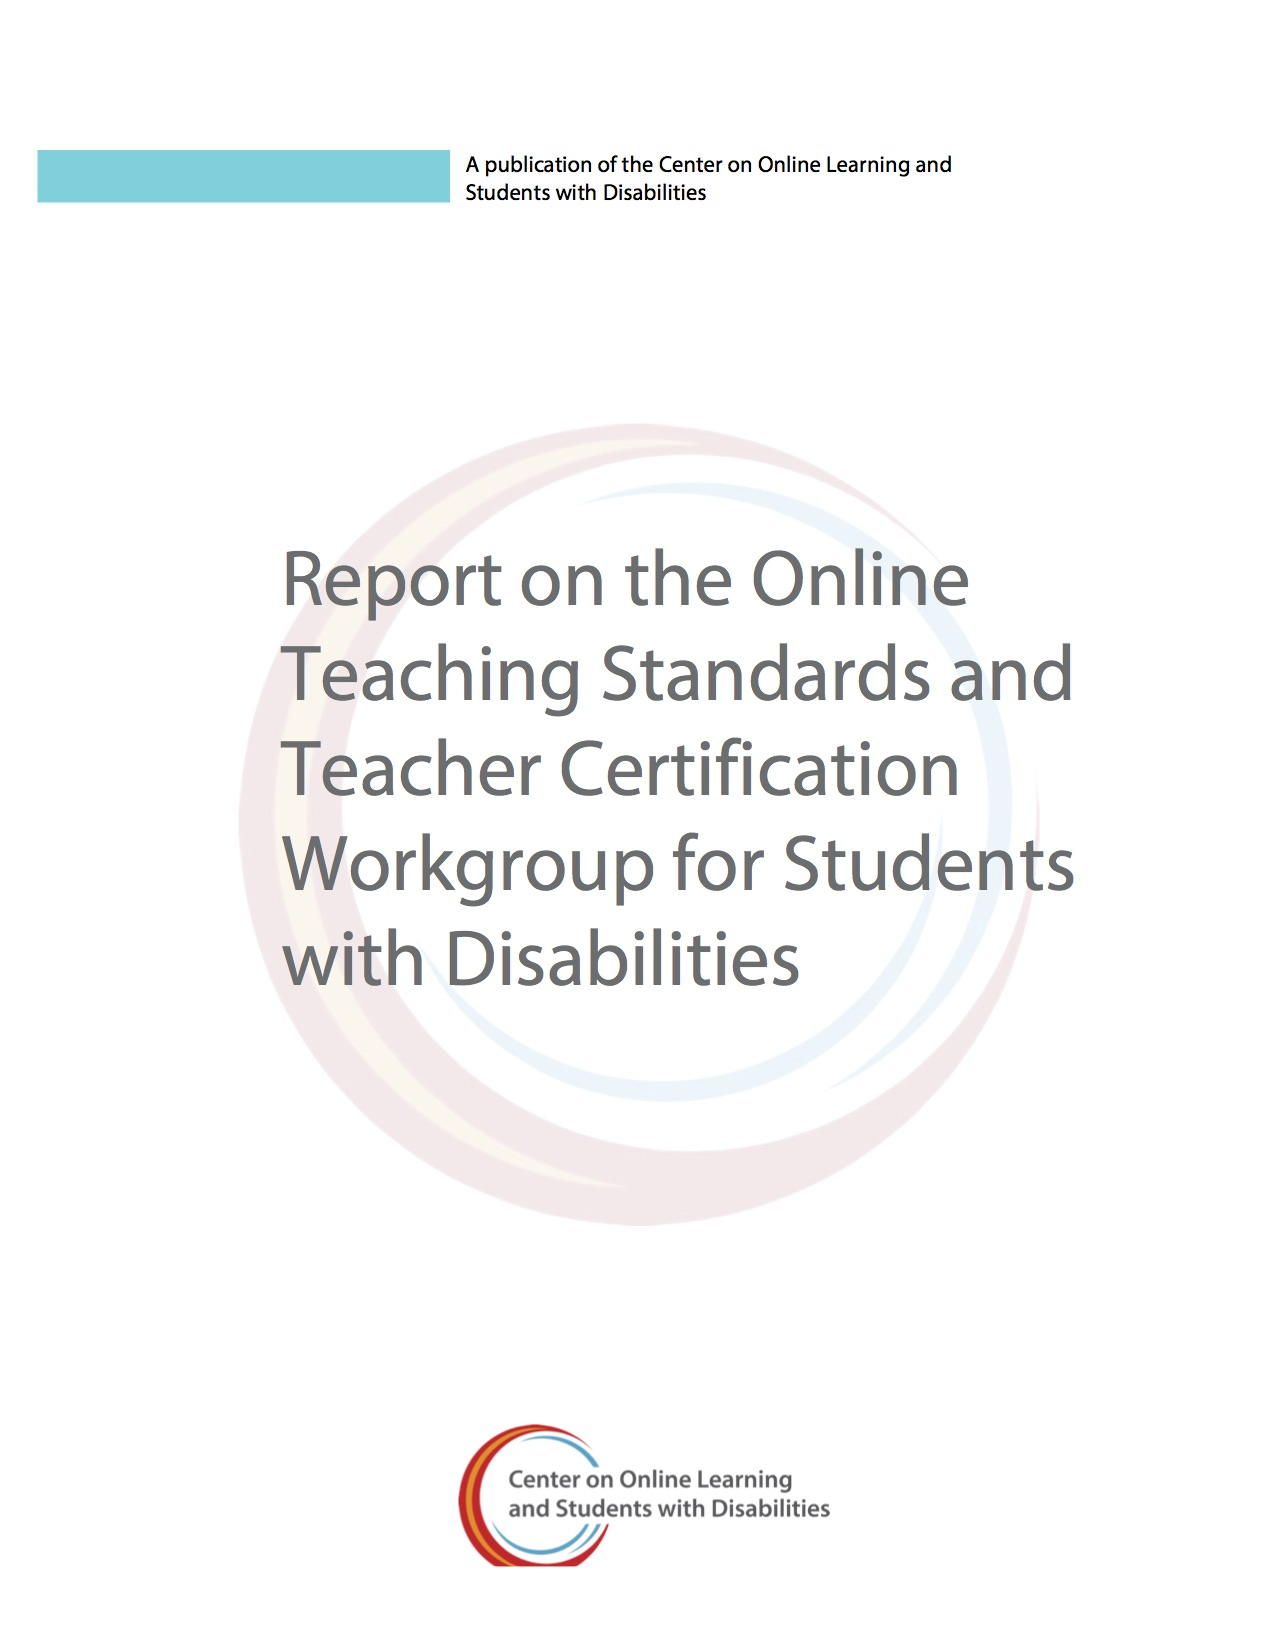 Report On The Online Teaching Standards And Teacher Certification Workgroup For Students With Disabilities